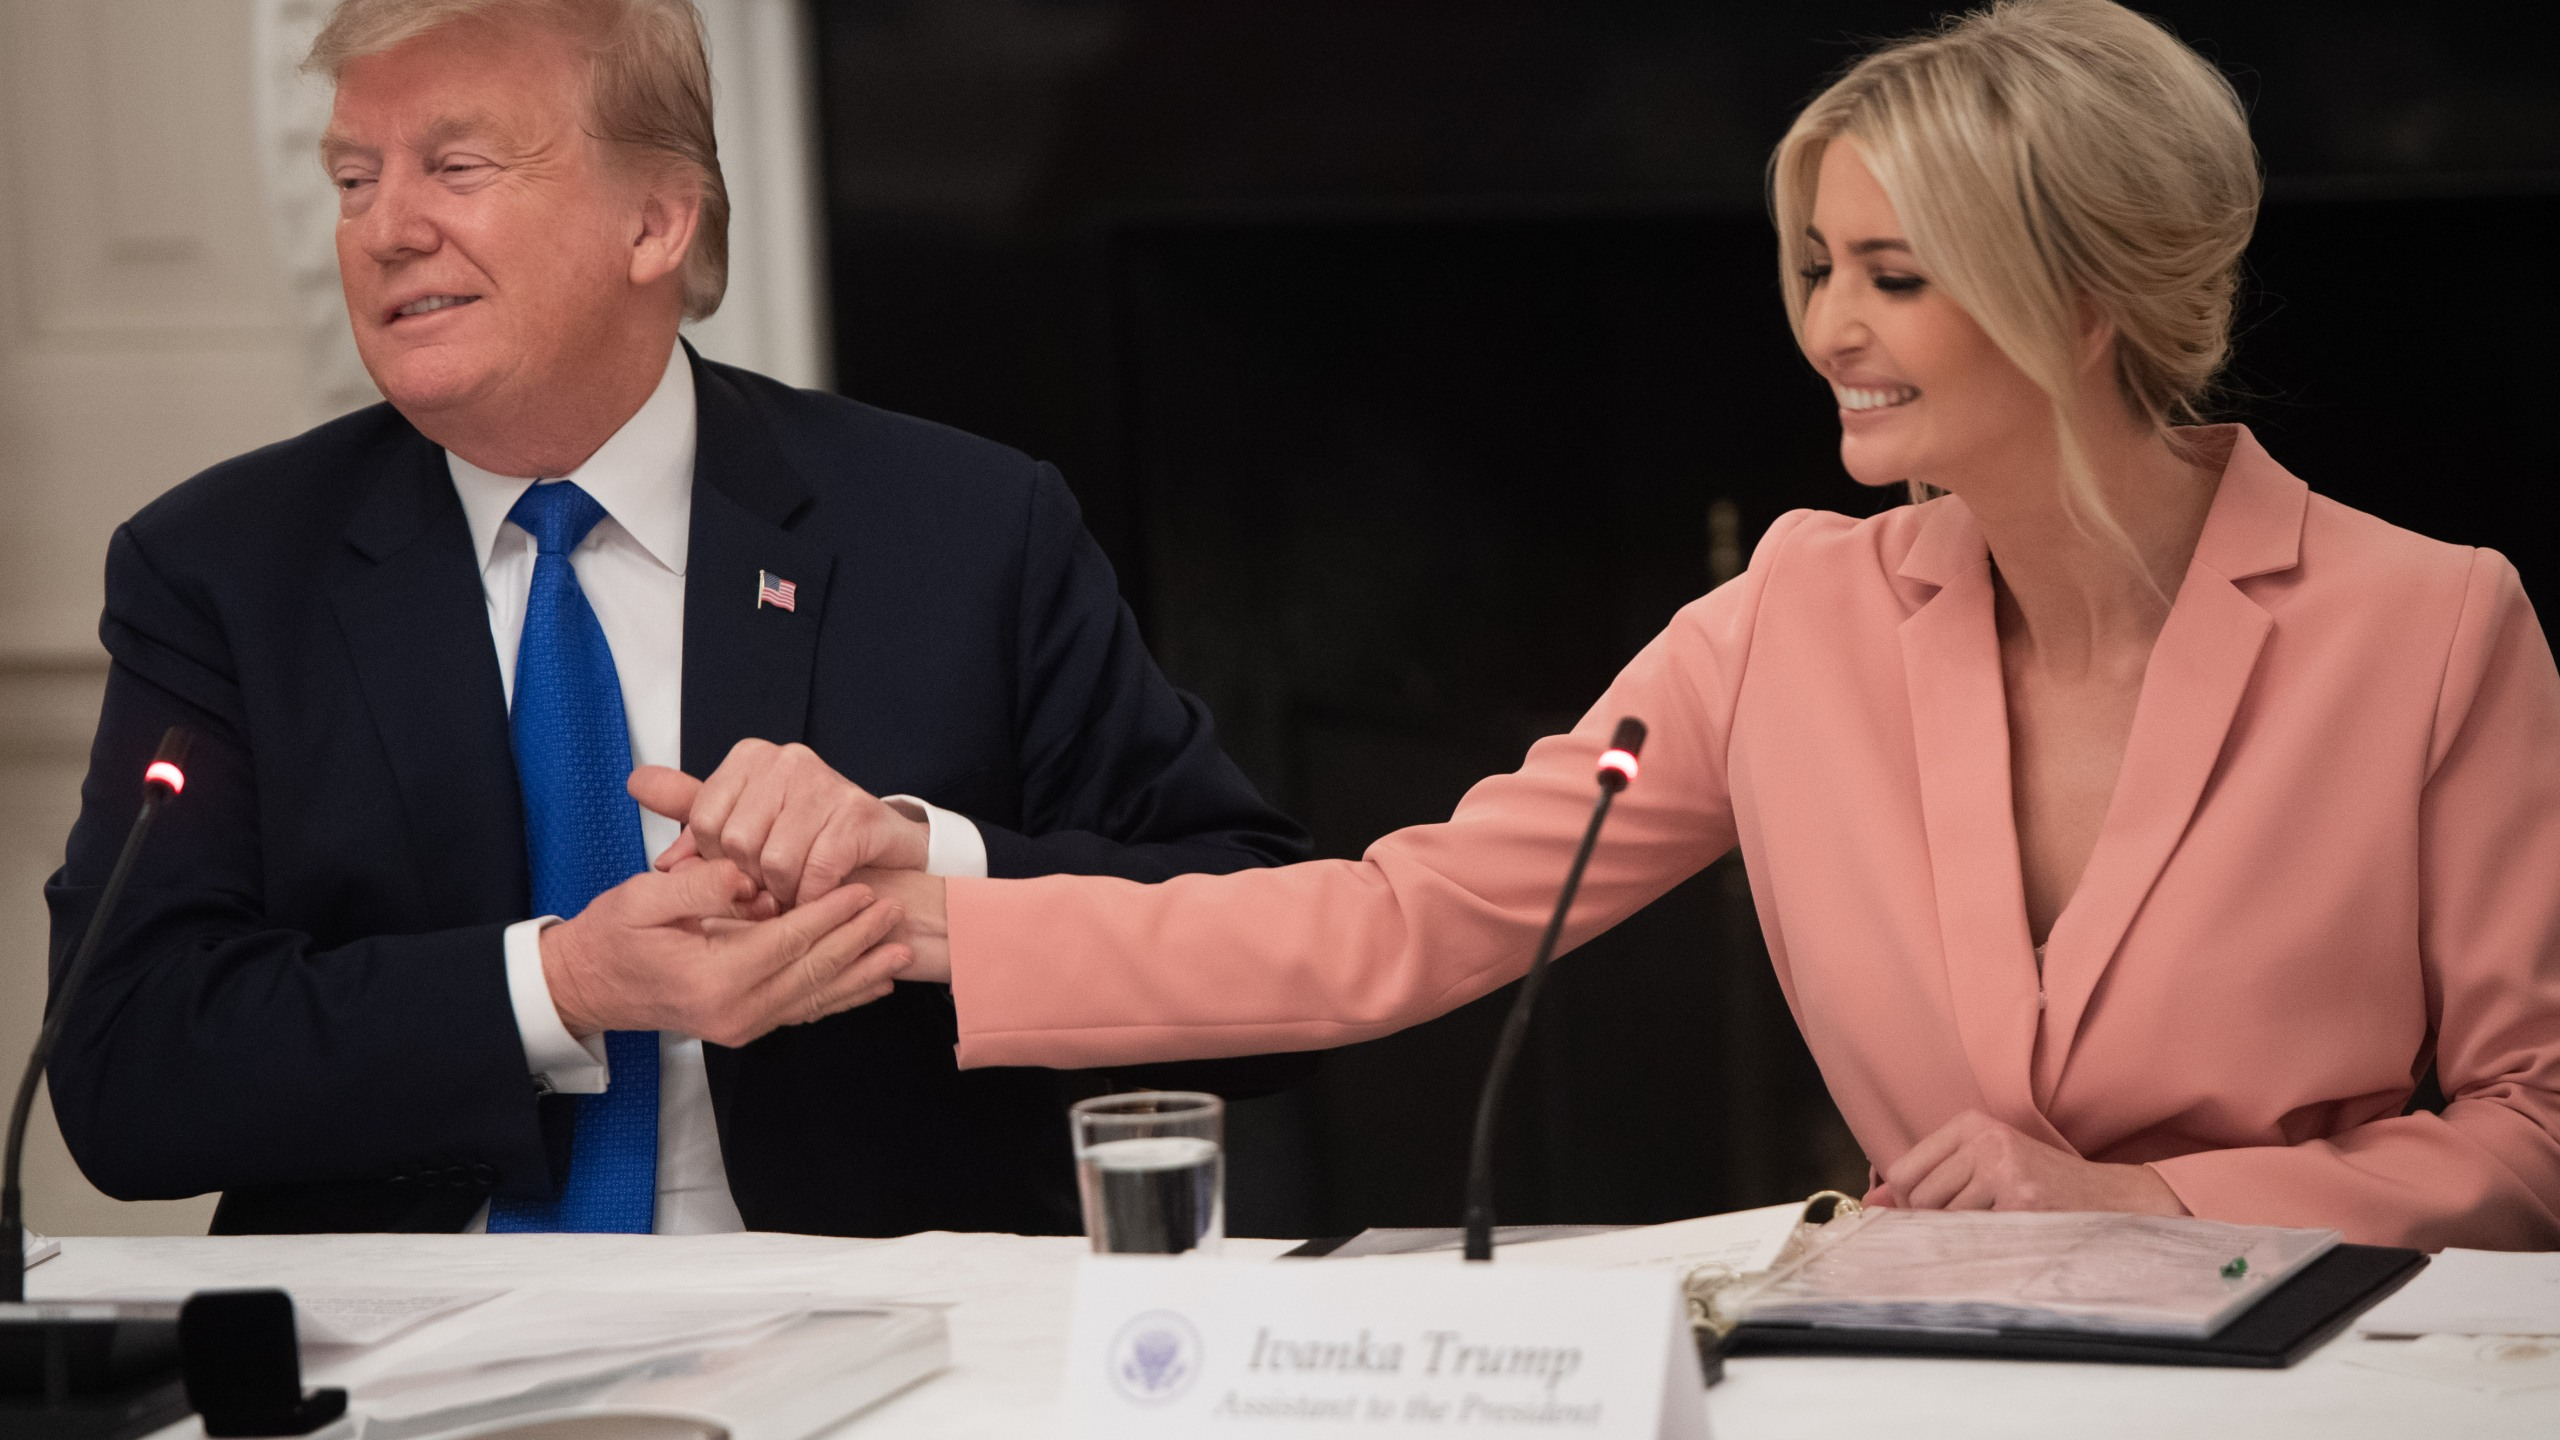 US President Donald Trump speaks alongside senior advisor and daughter Ivanka Trump (R) during the first meeting of the American Workforce Policy Advisory Board in the State Dining Room of the White House in Washington, DC, March 6, 2019. (Credit: SAUL LOEB/AFP/Getty Images)